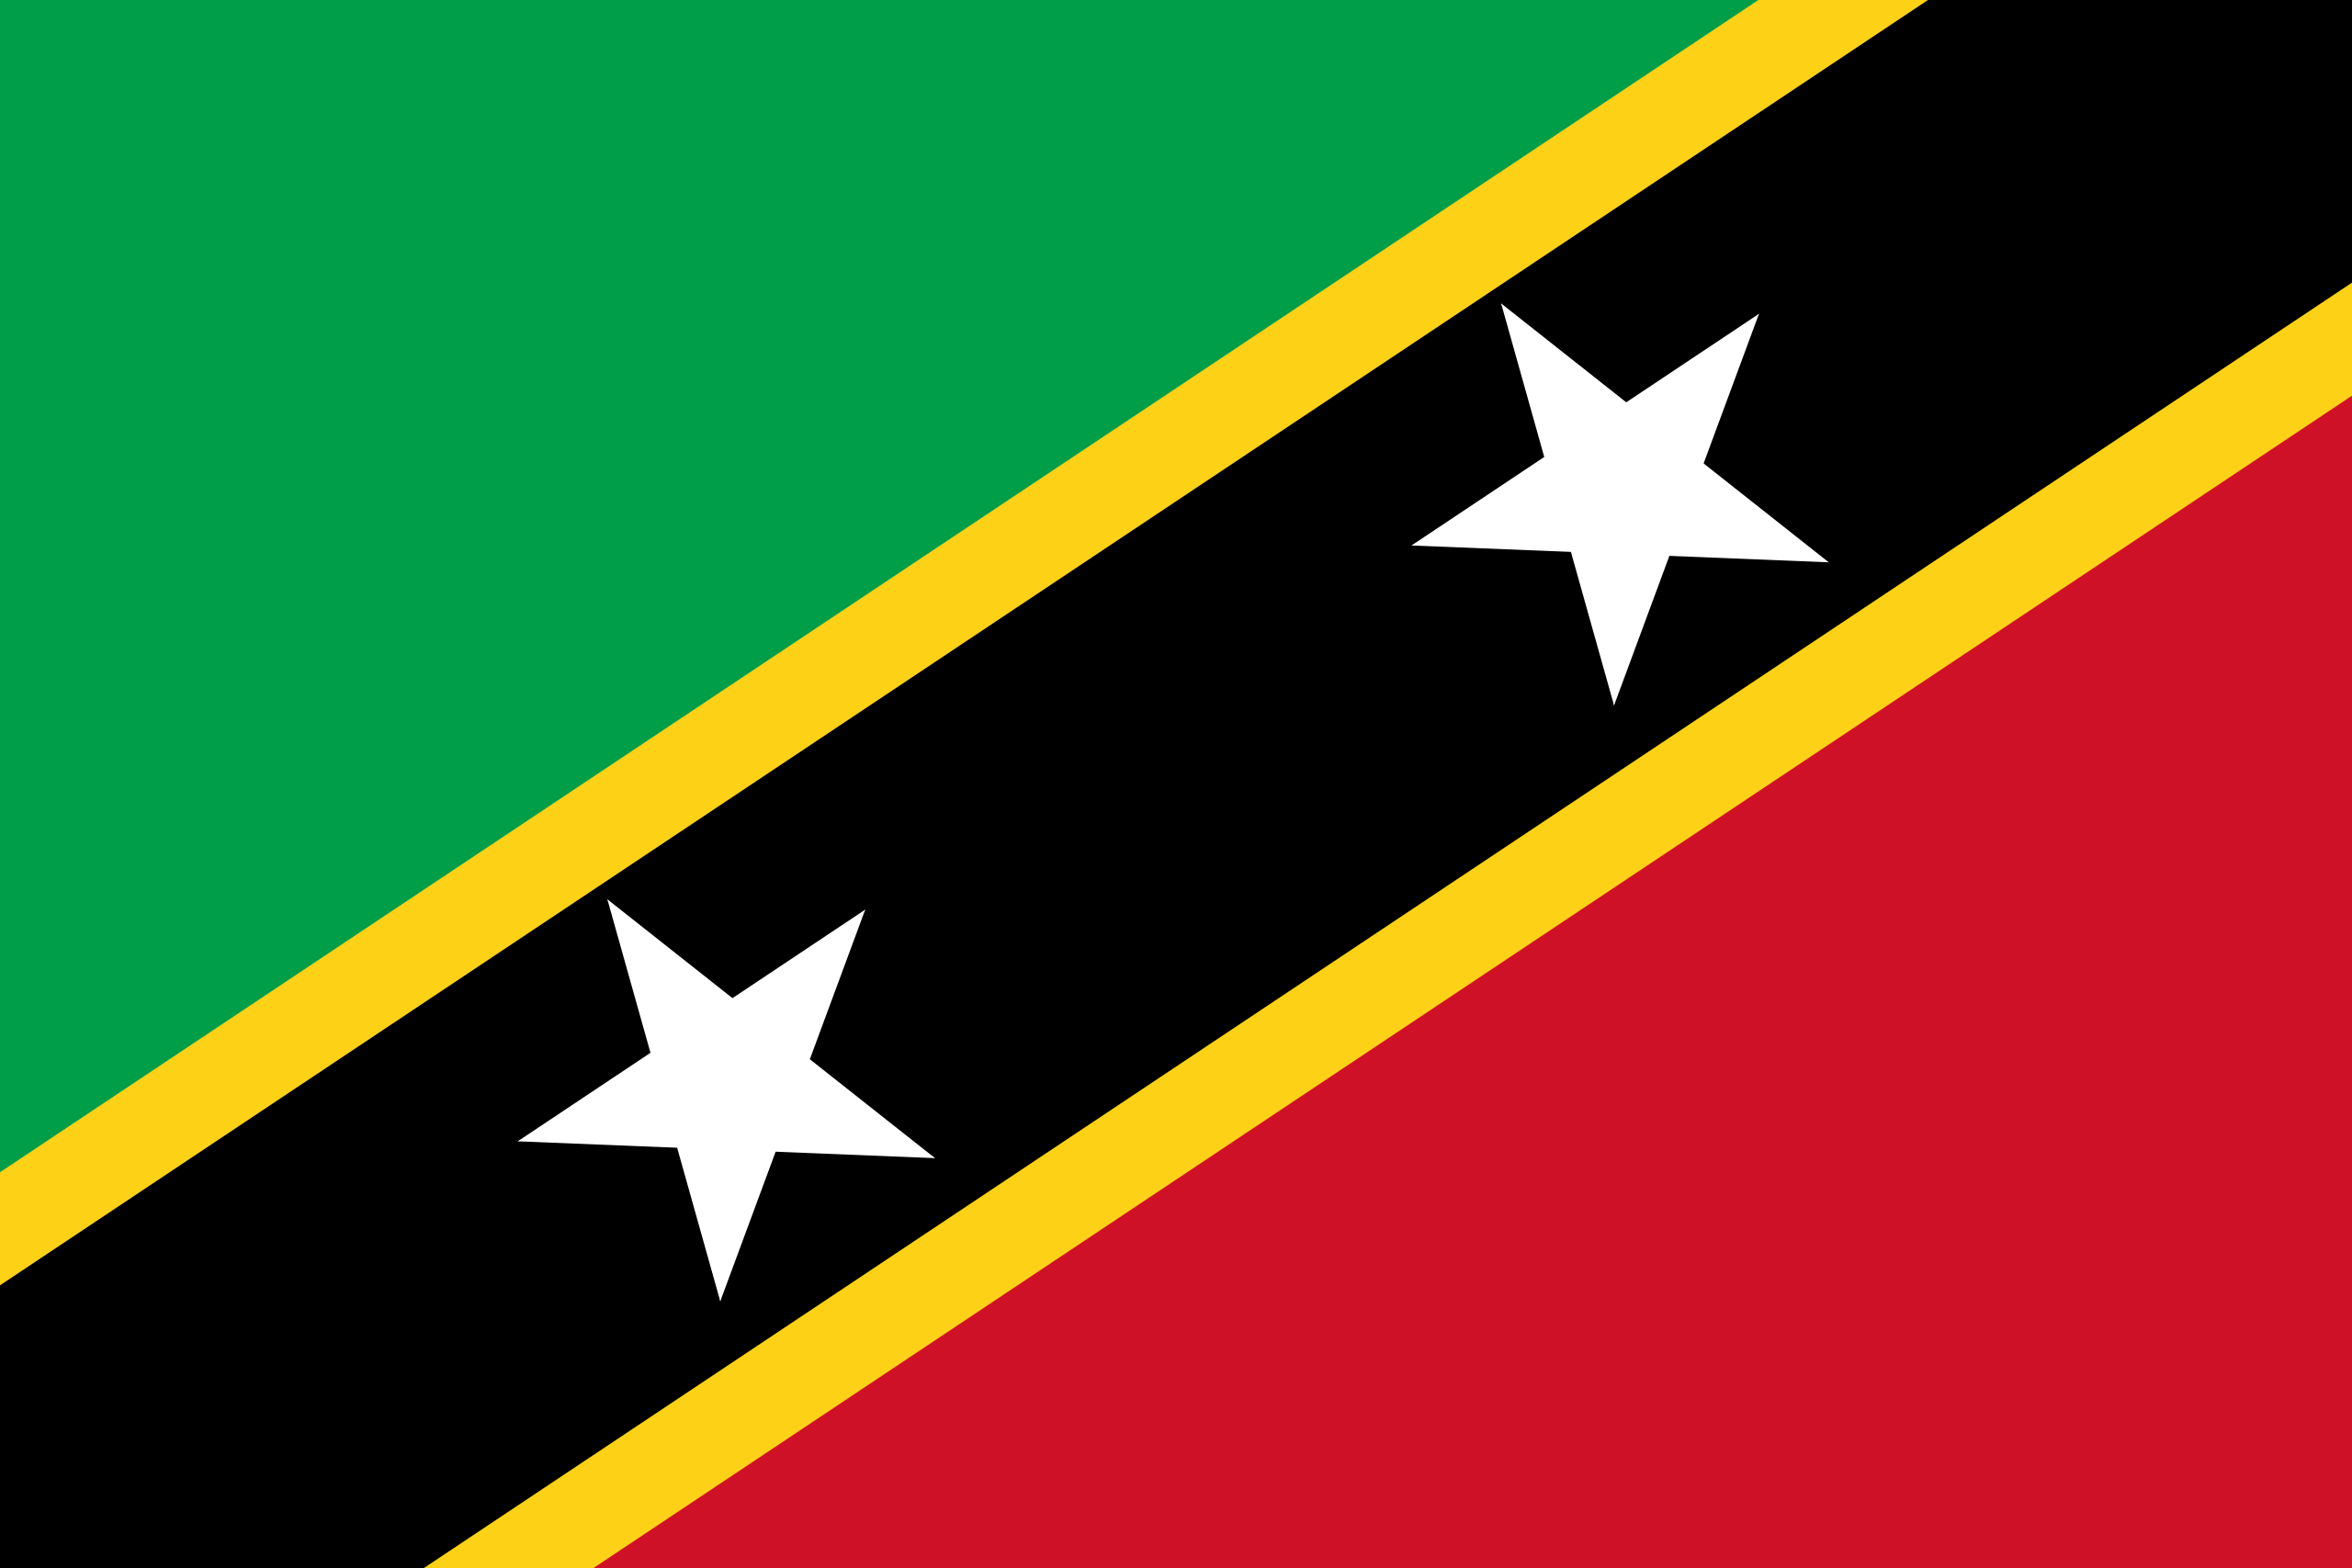 St. Kitts und Nevis, Land, Emblem, Logo, Symbol - Wallpaper HD - Prof.-falken.com